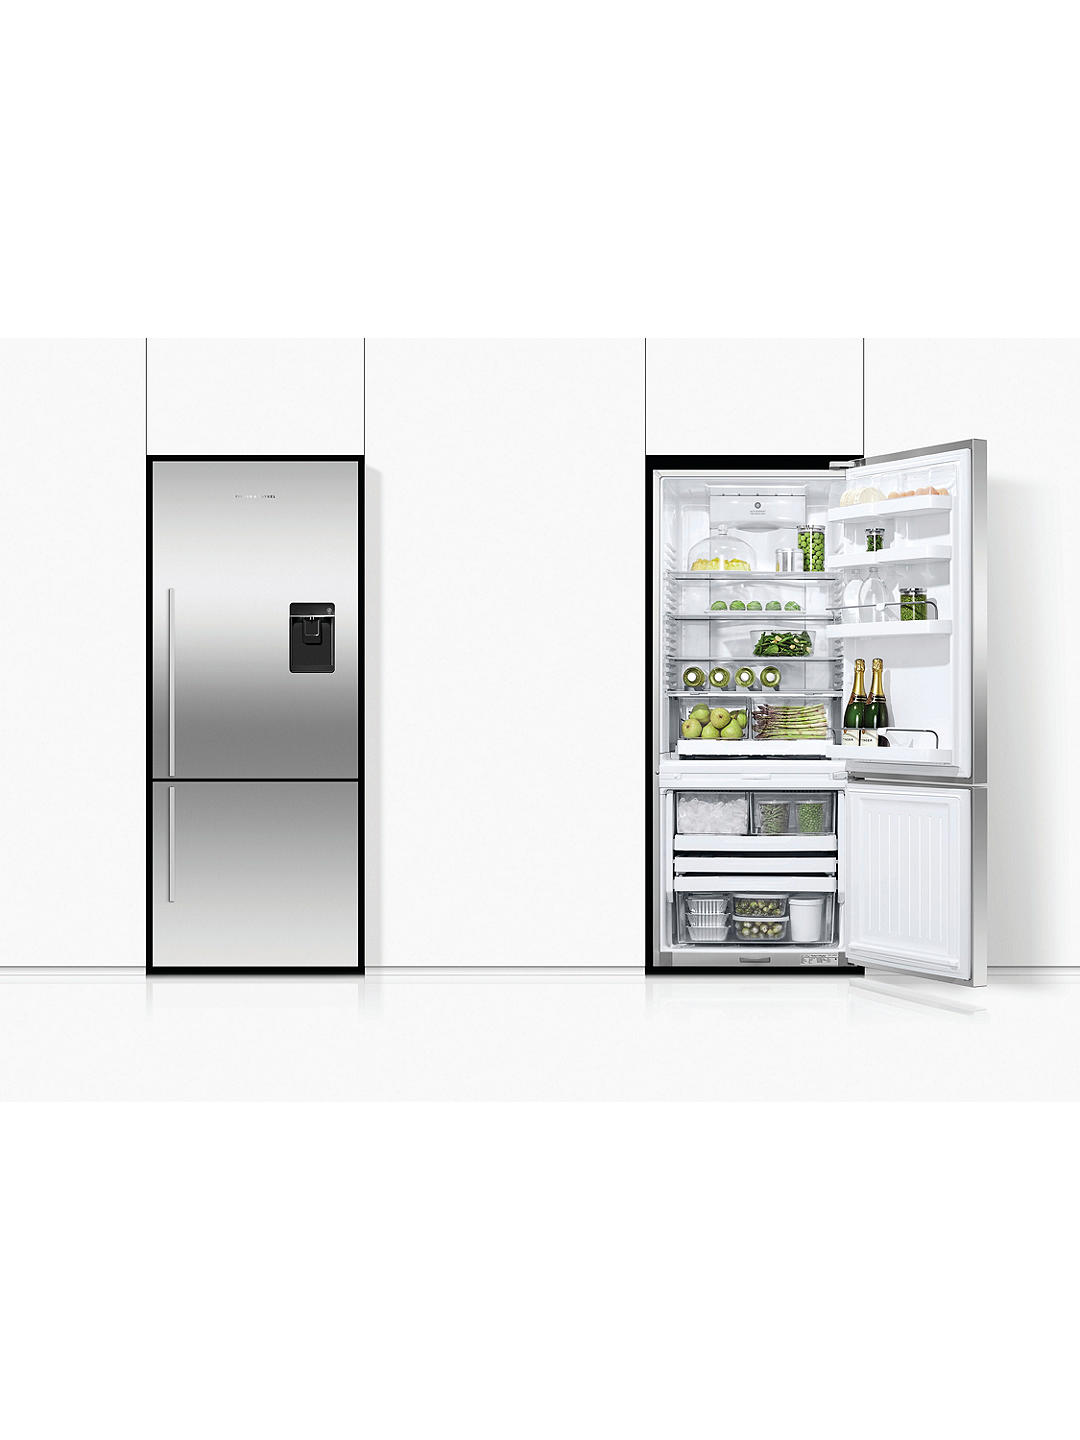 Buy Fisher & Paykel E442BRXFDU4 Freestanding 70/30 Fridge Freezer with Water & Ice Dispenser, A+ Energy Rating, Right-Hand Hinge, 68cm Wide, Stainless Steel Online at johnlewis.com